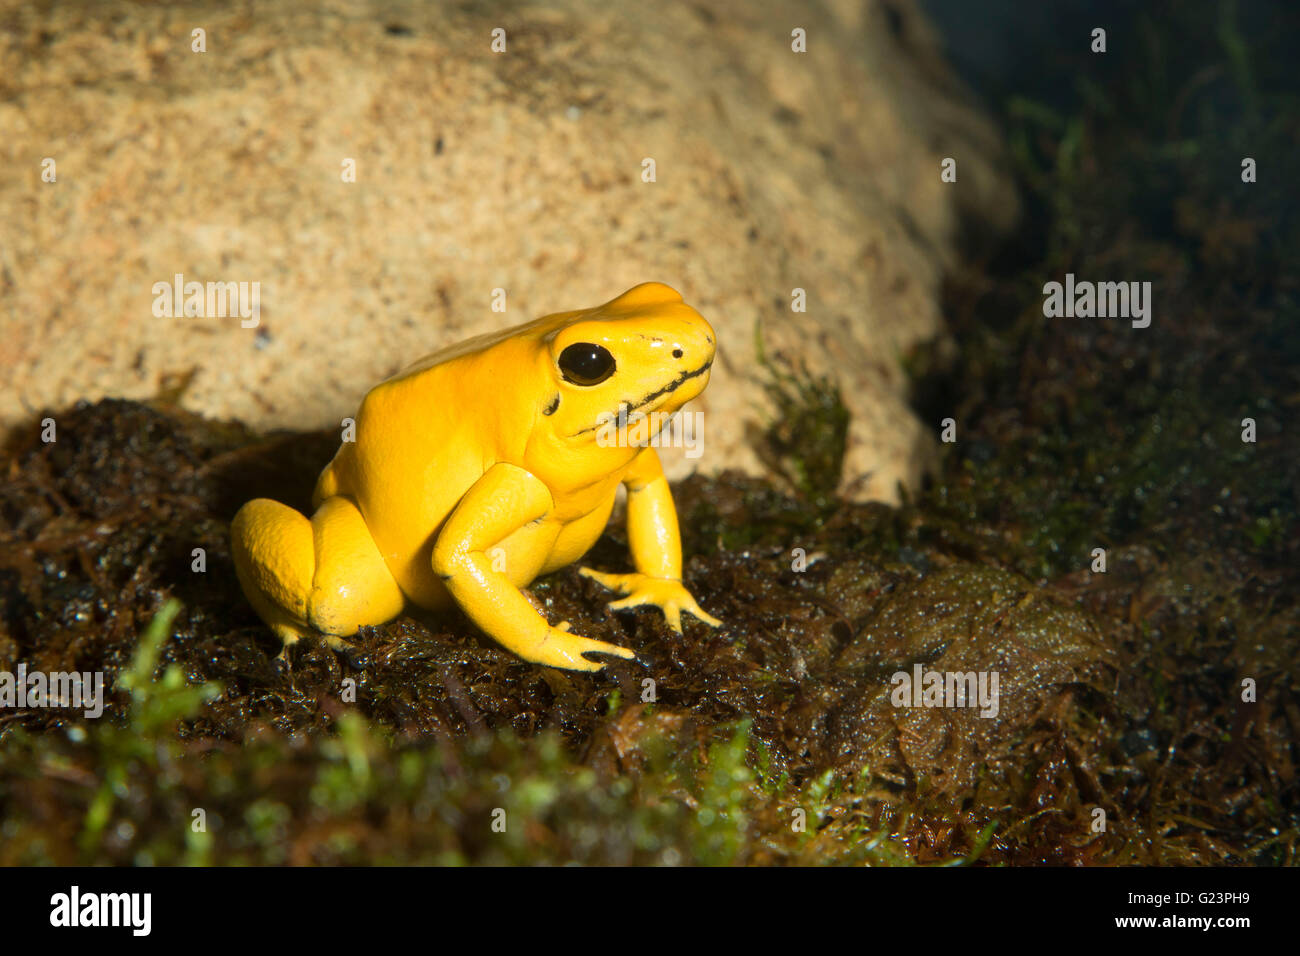 Golden poison frog (Phyllobates terribilis), Point Defiance Zoo and Aquarium, Point Defiance Park, Tacoma, Washington - Stock Image